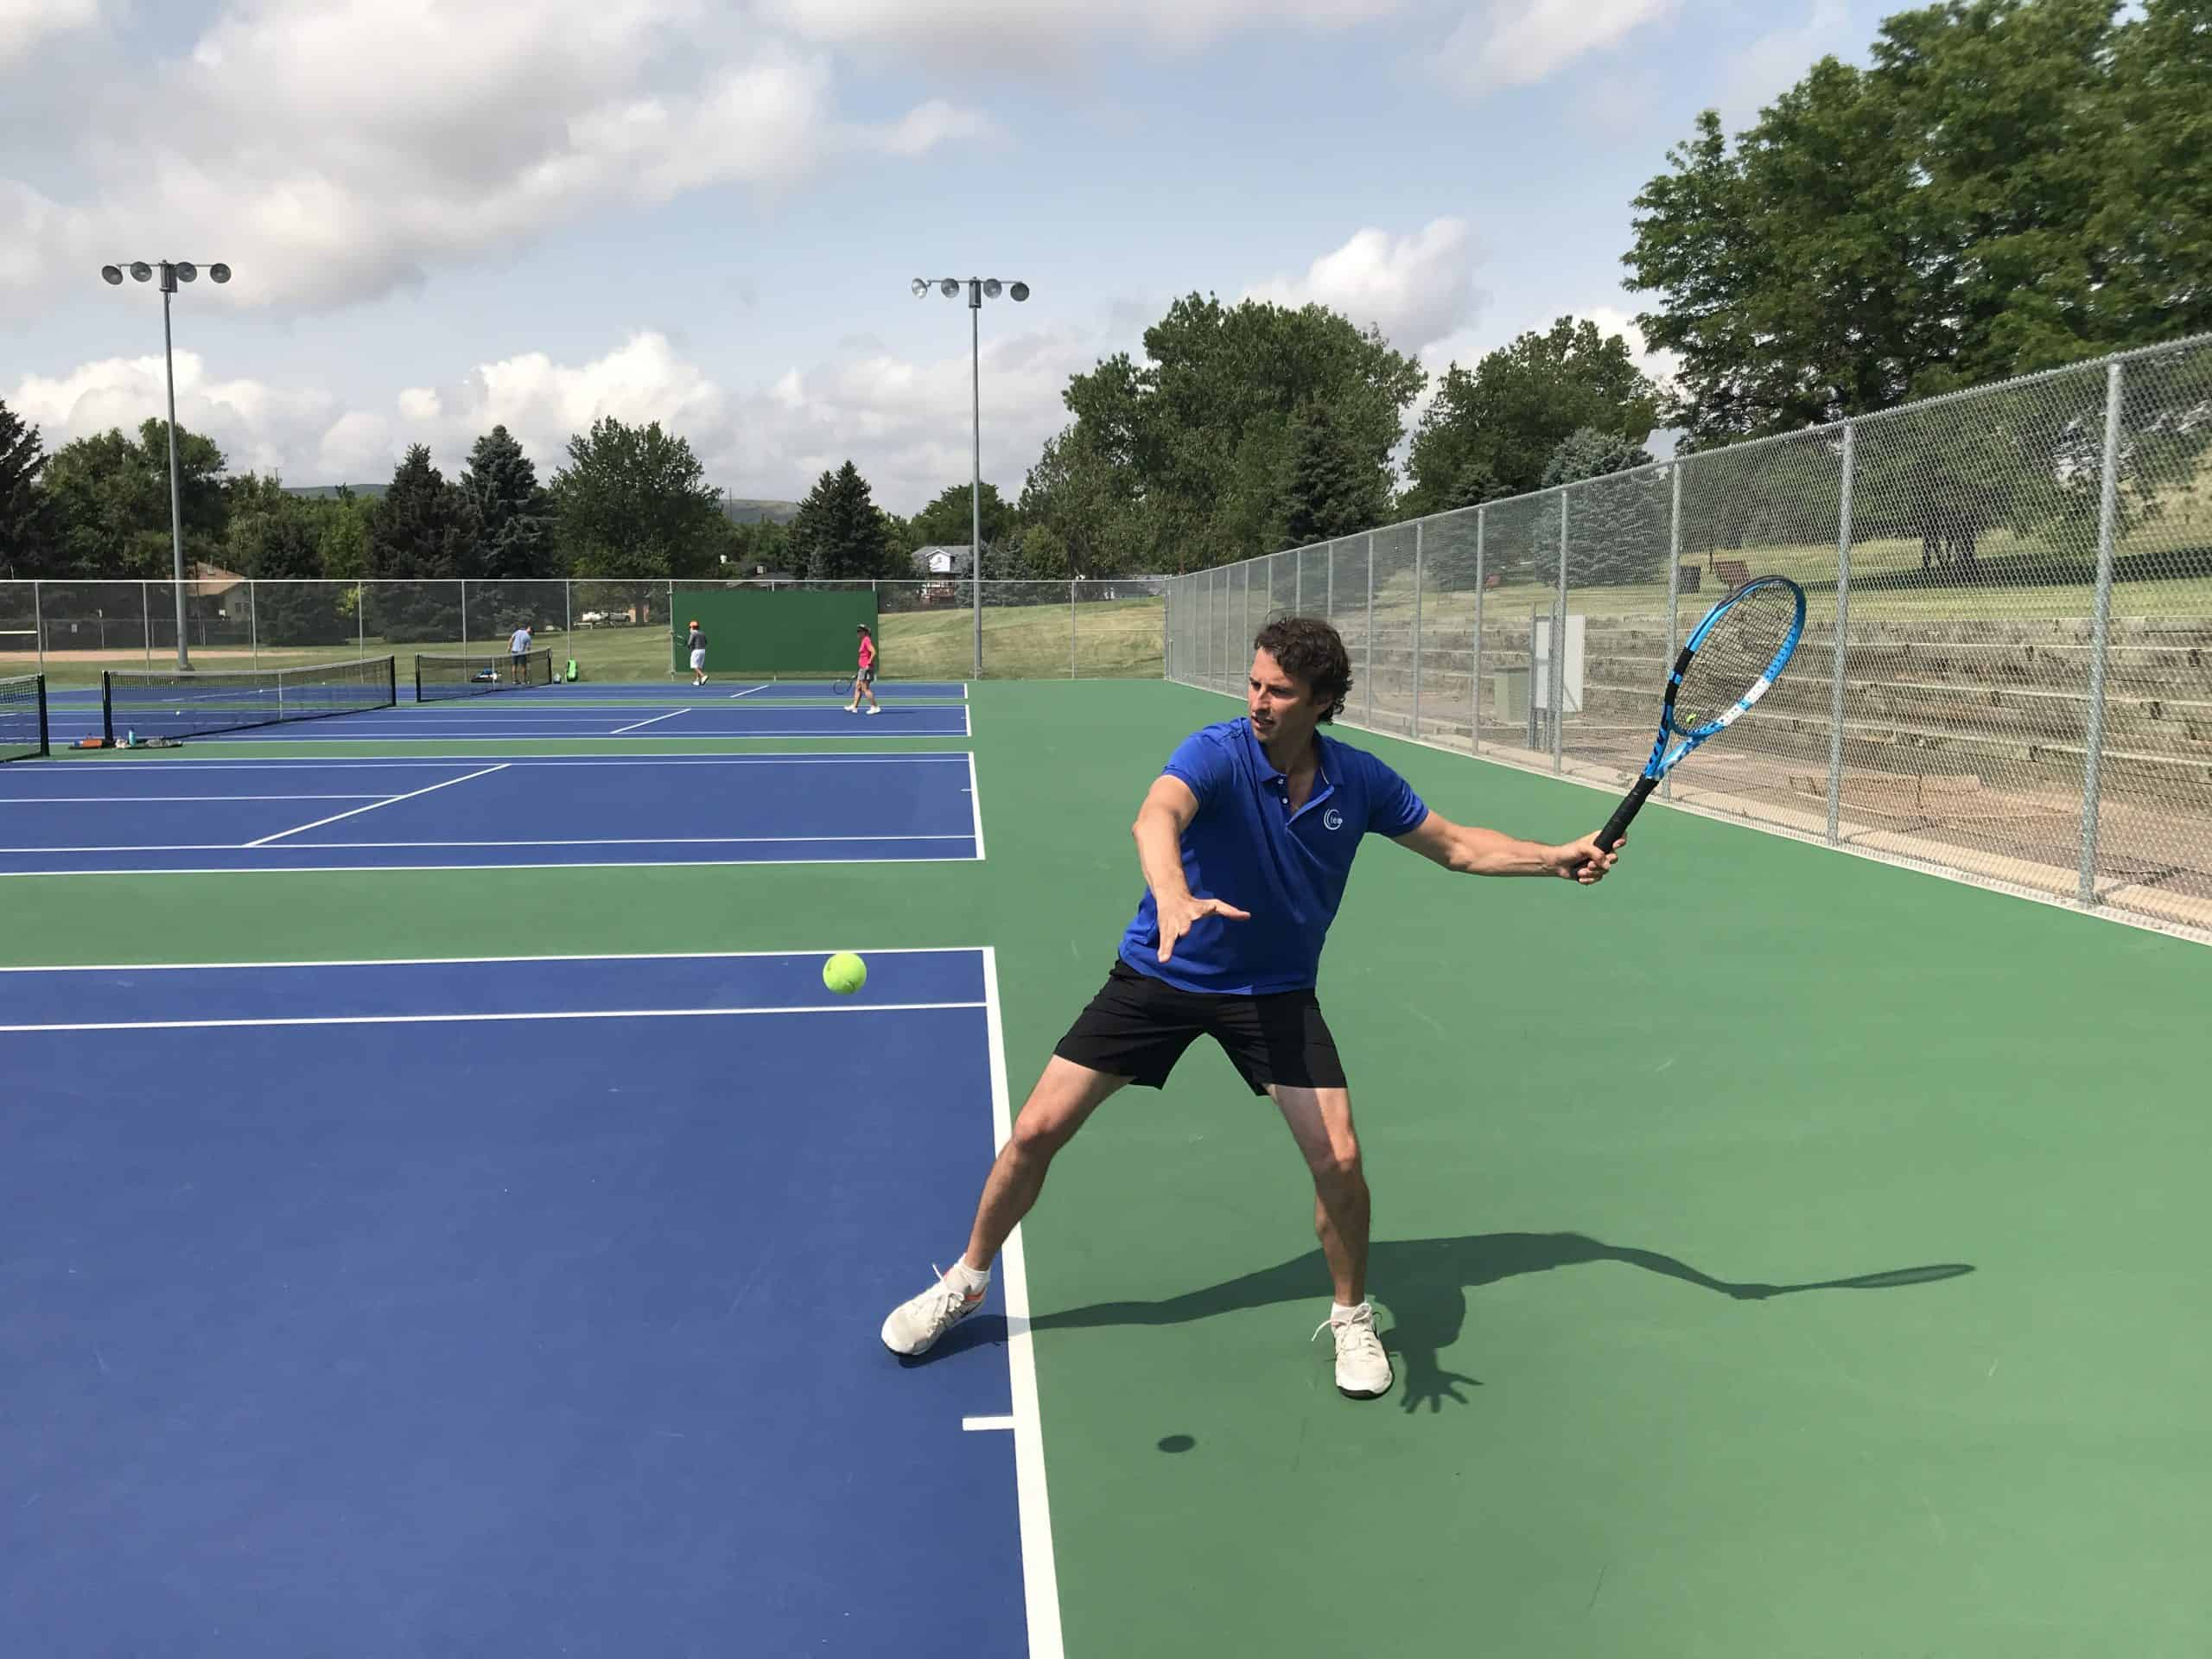 Tennis topspin forehand technique